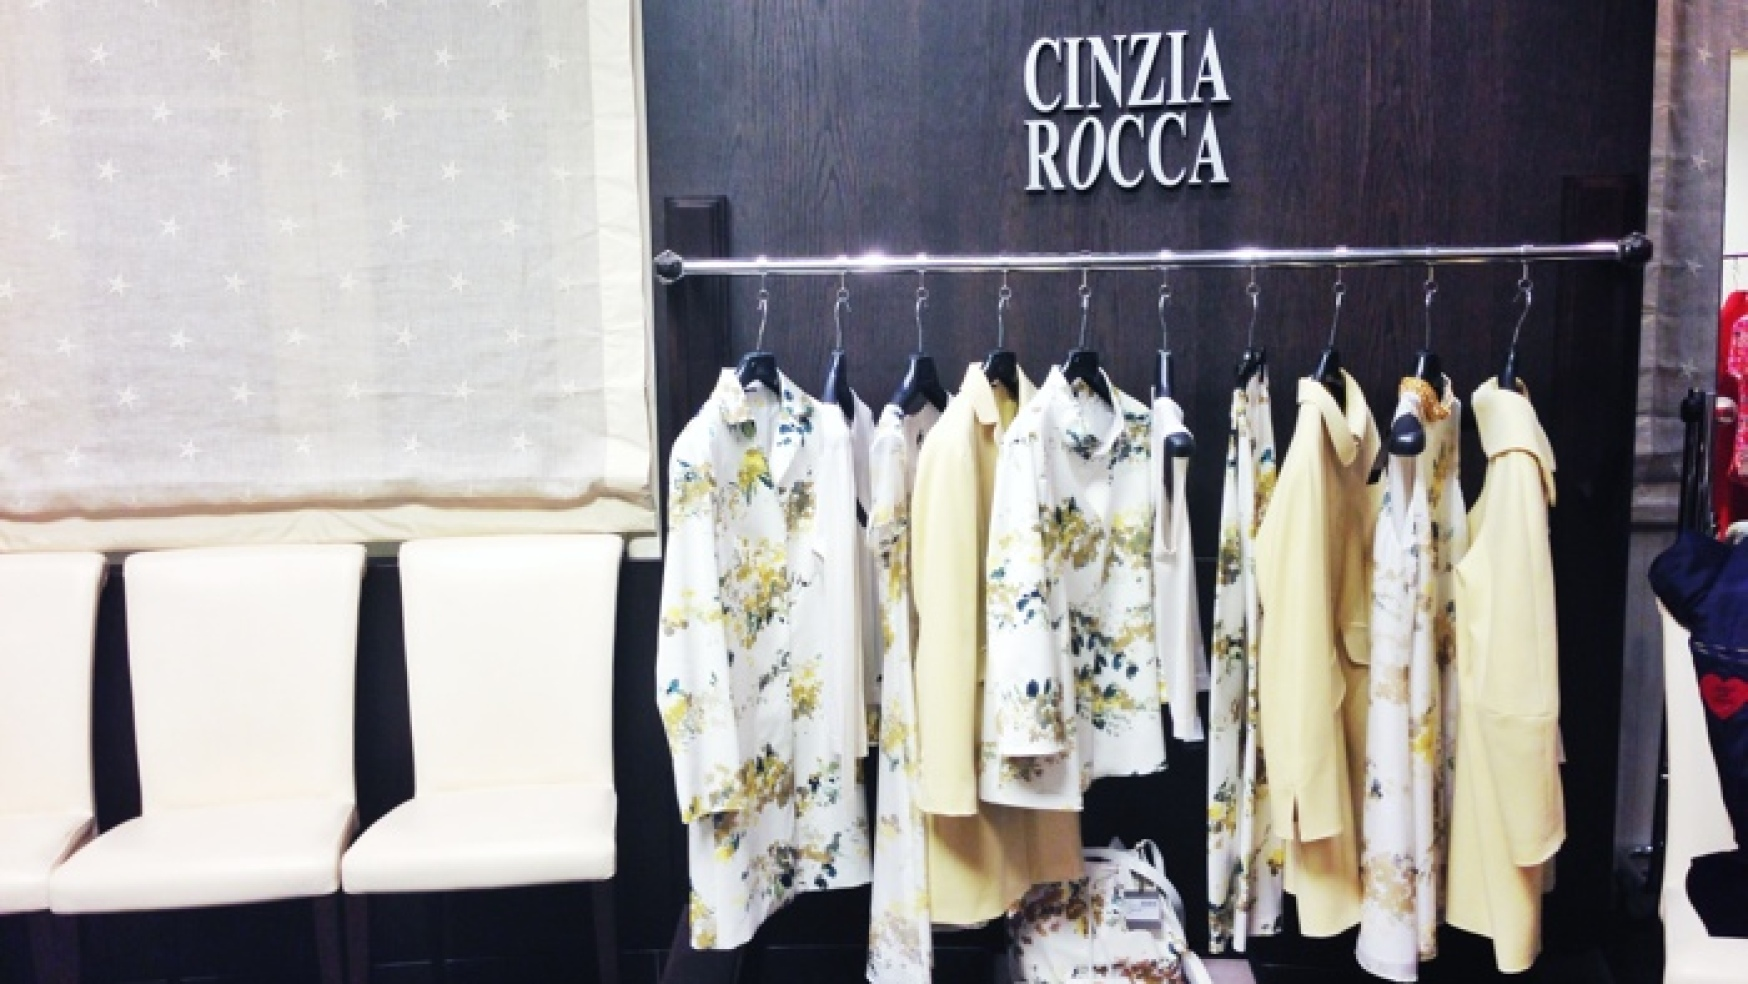 Cinzia Rocca press day